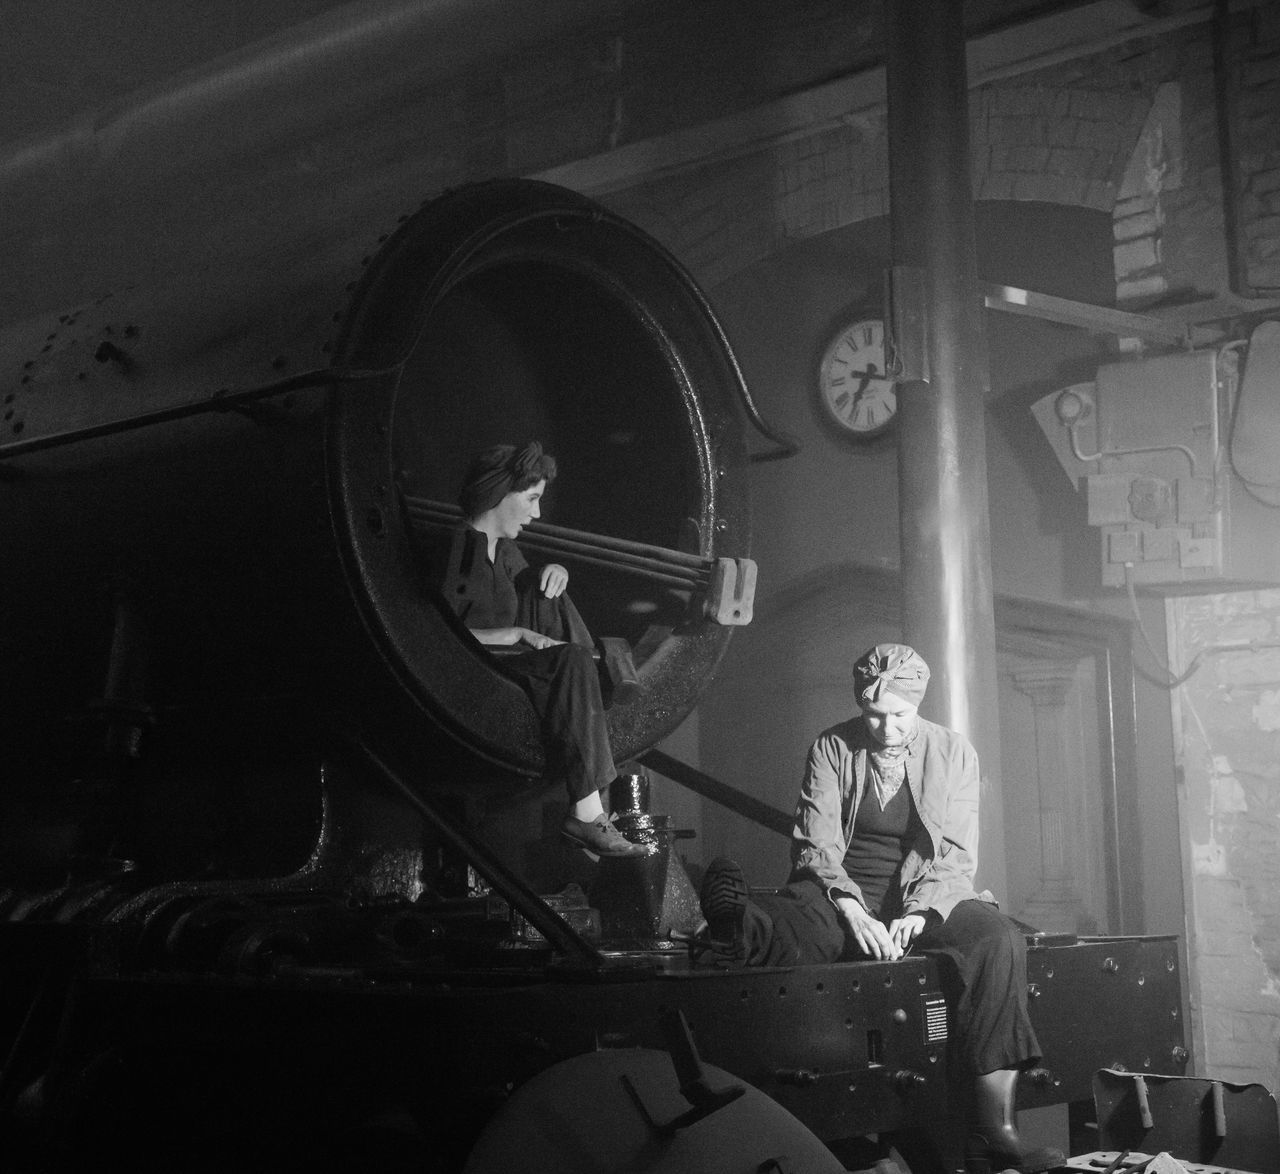 Women At Work B&W Collection Headscarfs Indoors  Monochrome People Period Clothes Steam Vintage Style Women Working